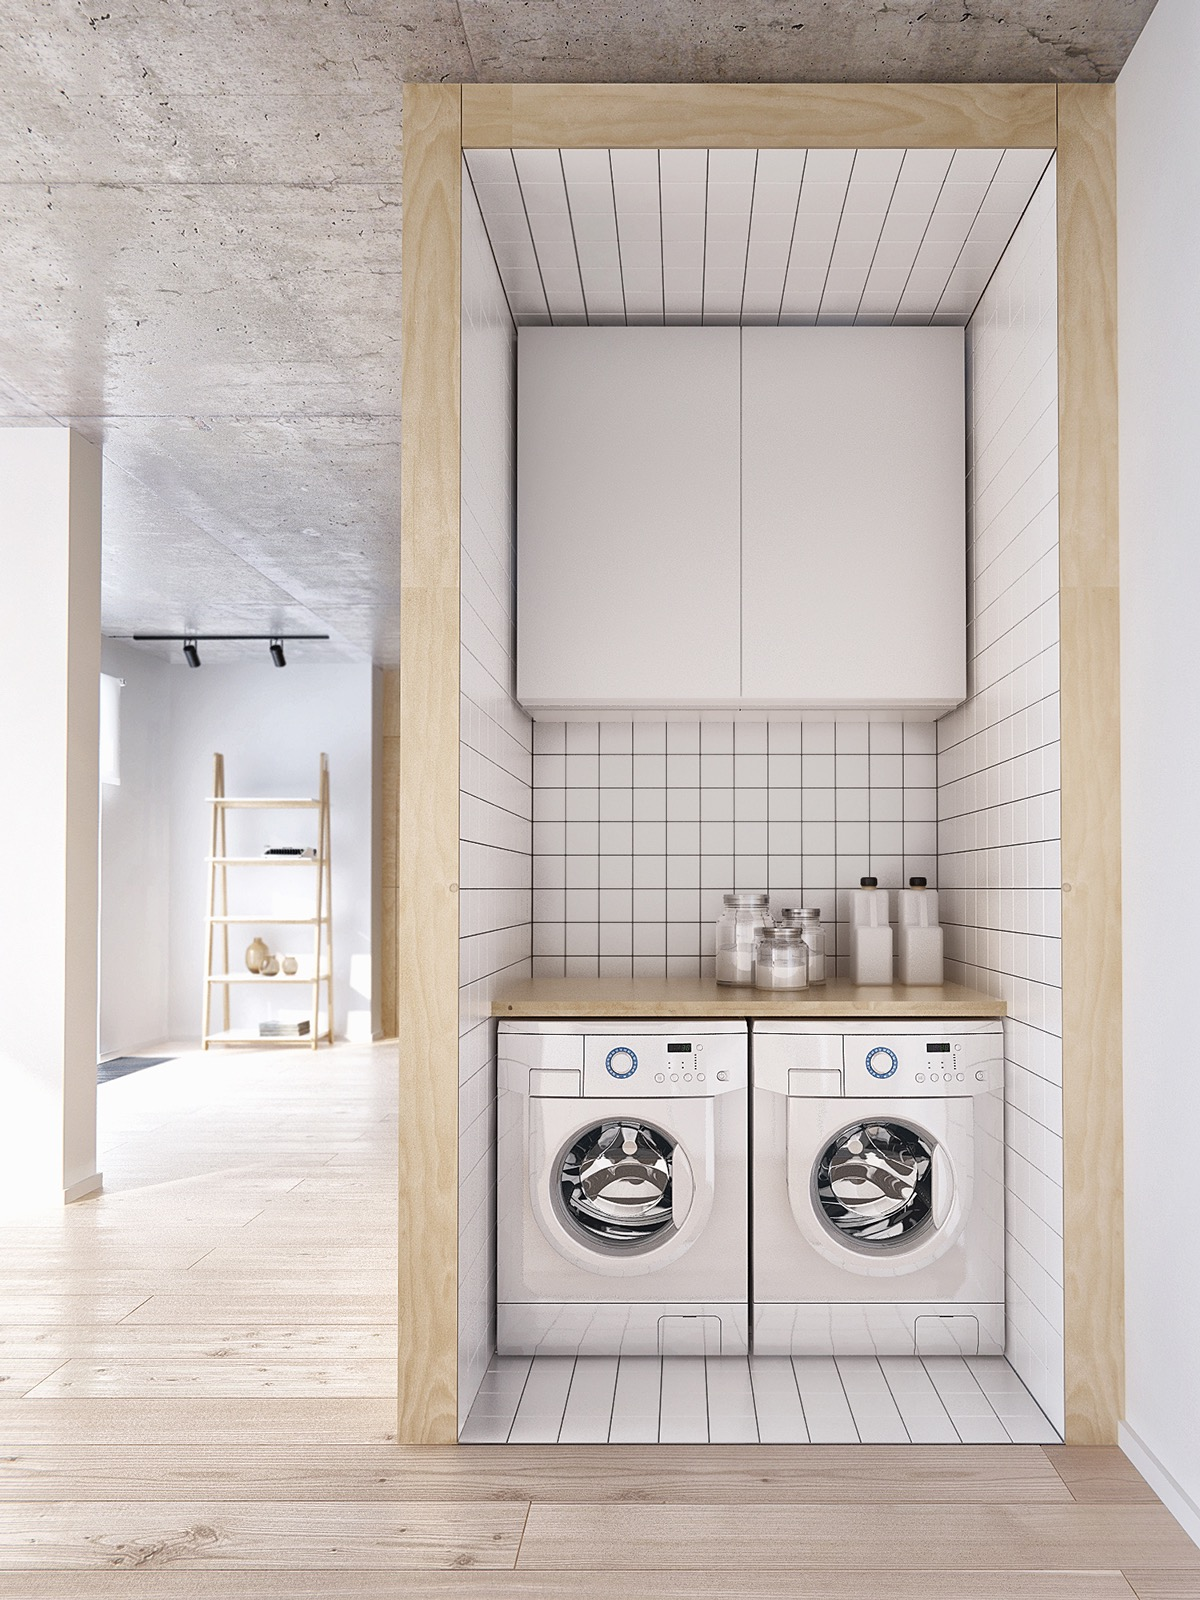 Trendy-modern-small-space-laundry-area-with-subway-tiles.jpg